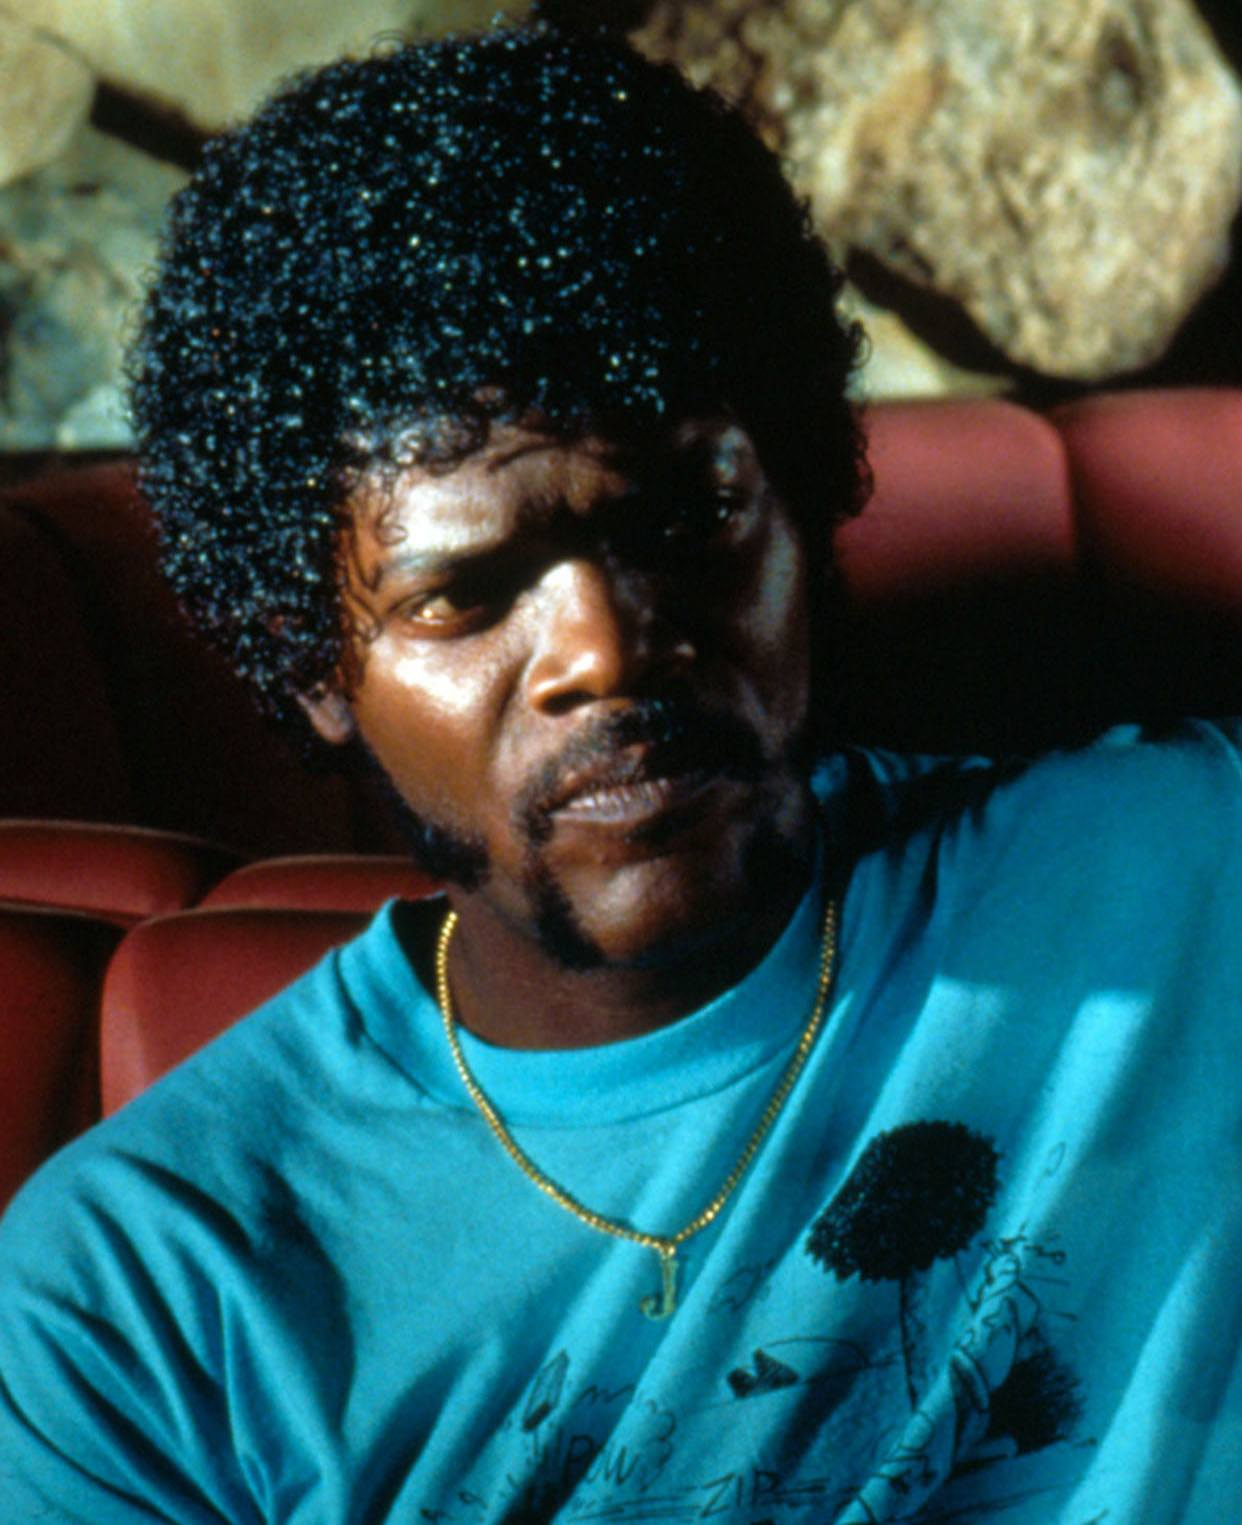 Pulp Fiction Jules Winnfield 3Wallpapers iPhone 25 Things You Never Knew About Pulp Fiction